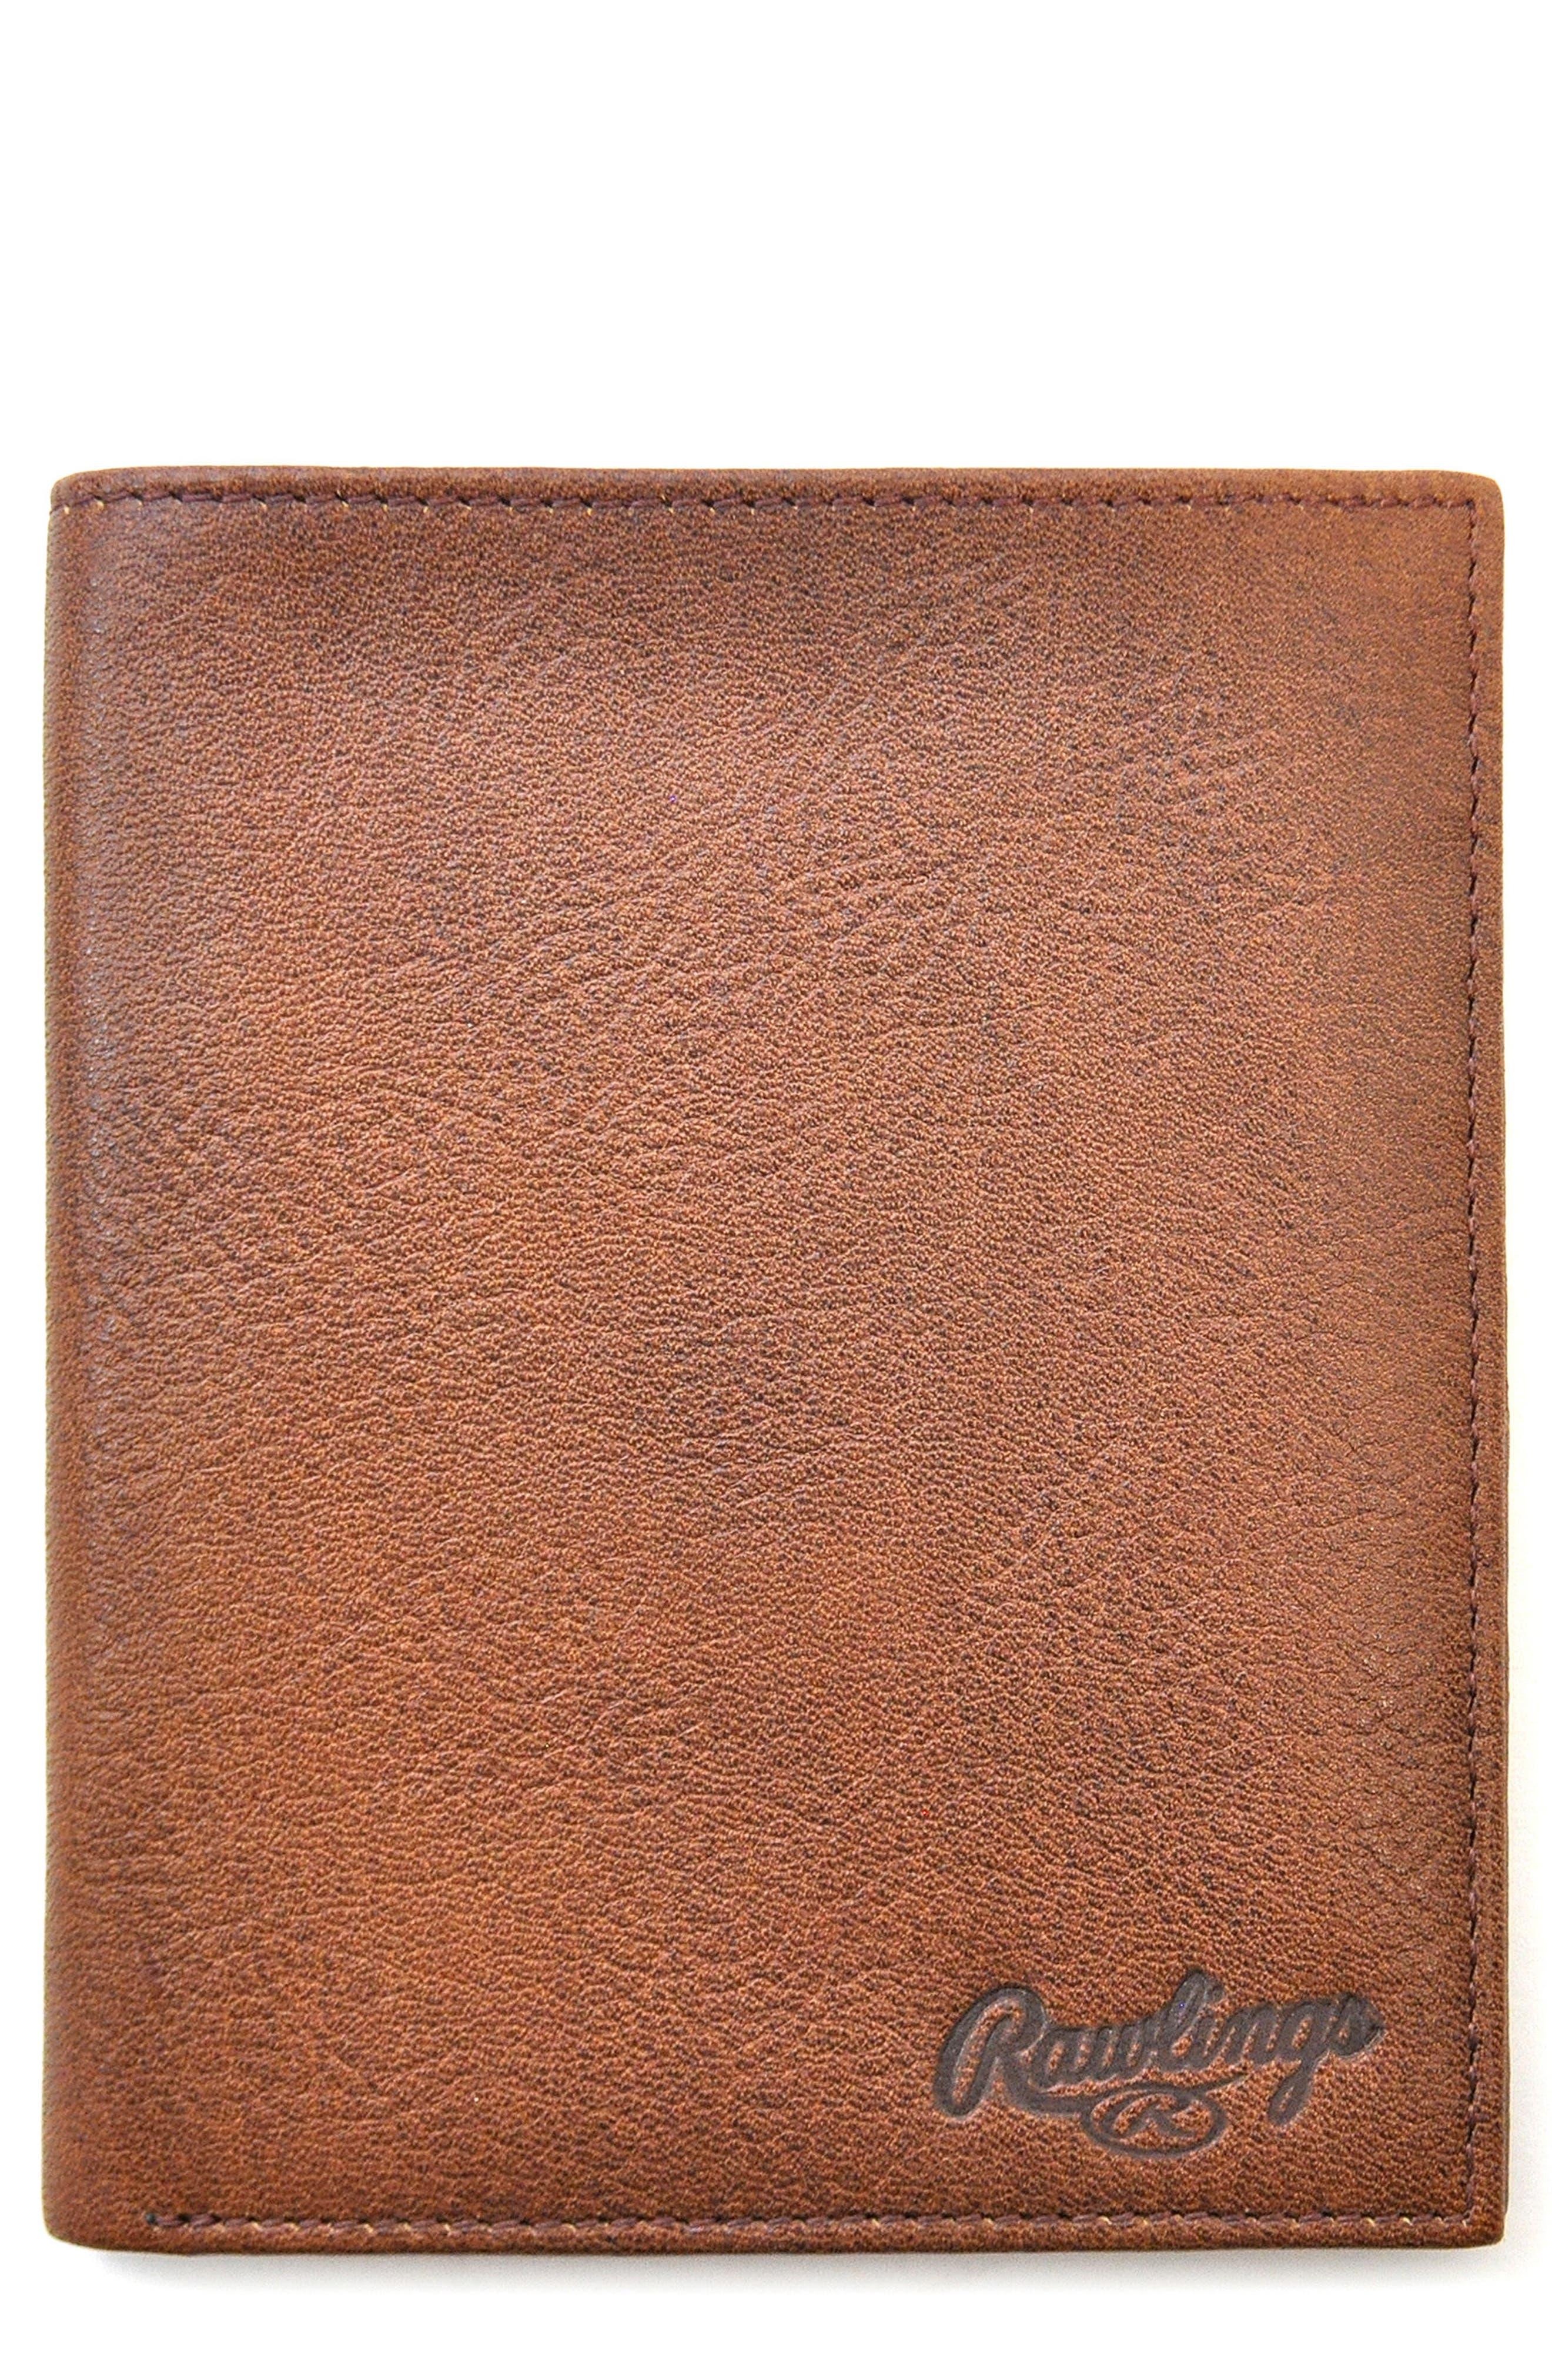 Triple Play Leather Executive Wallet,                         Main,                         color, 202